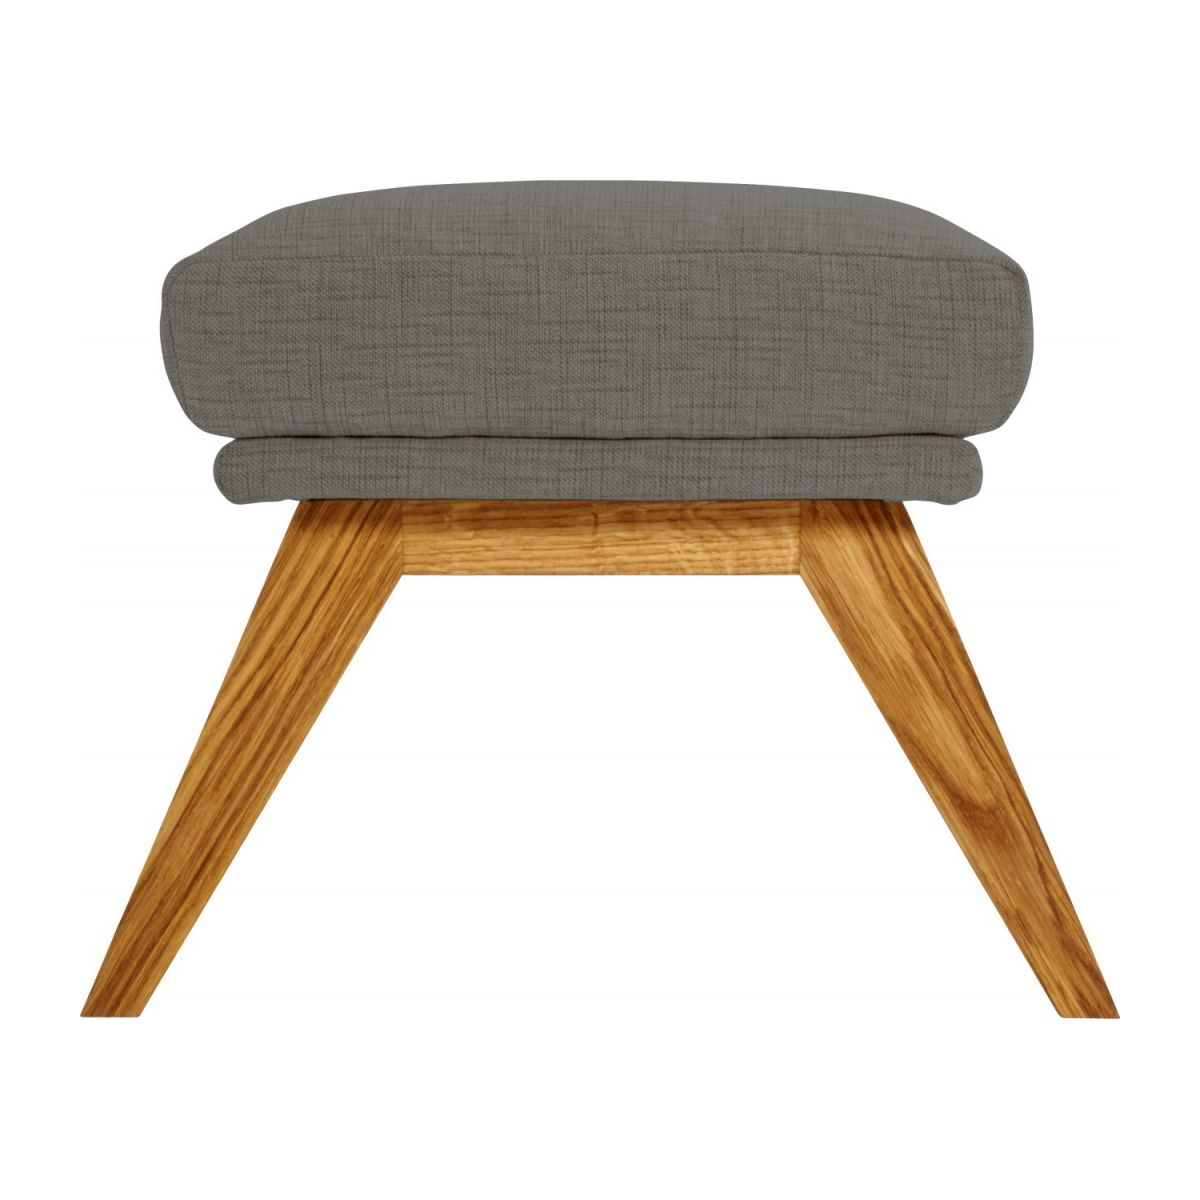 Footstool in Ancio fabric, river rock with oak legs n°4